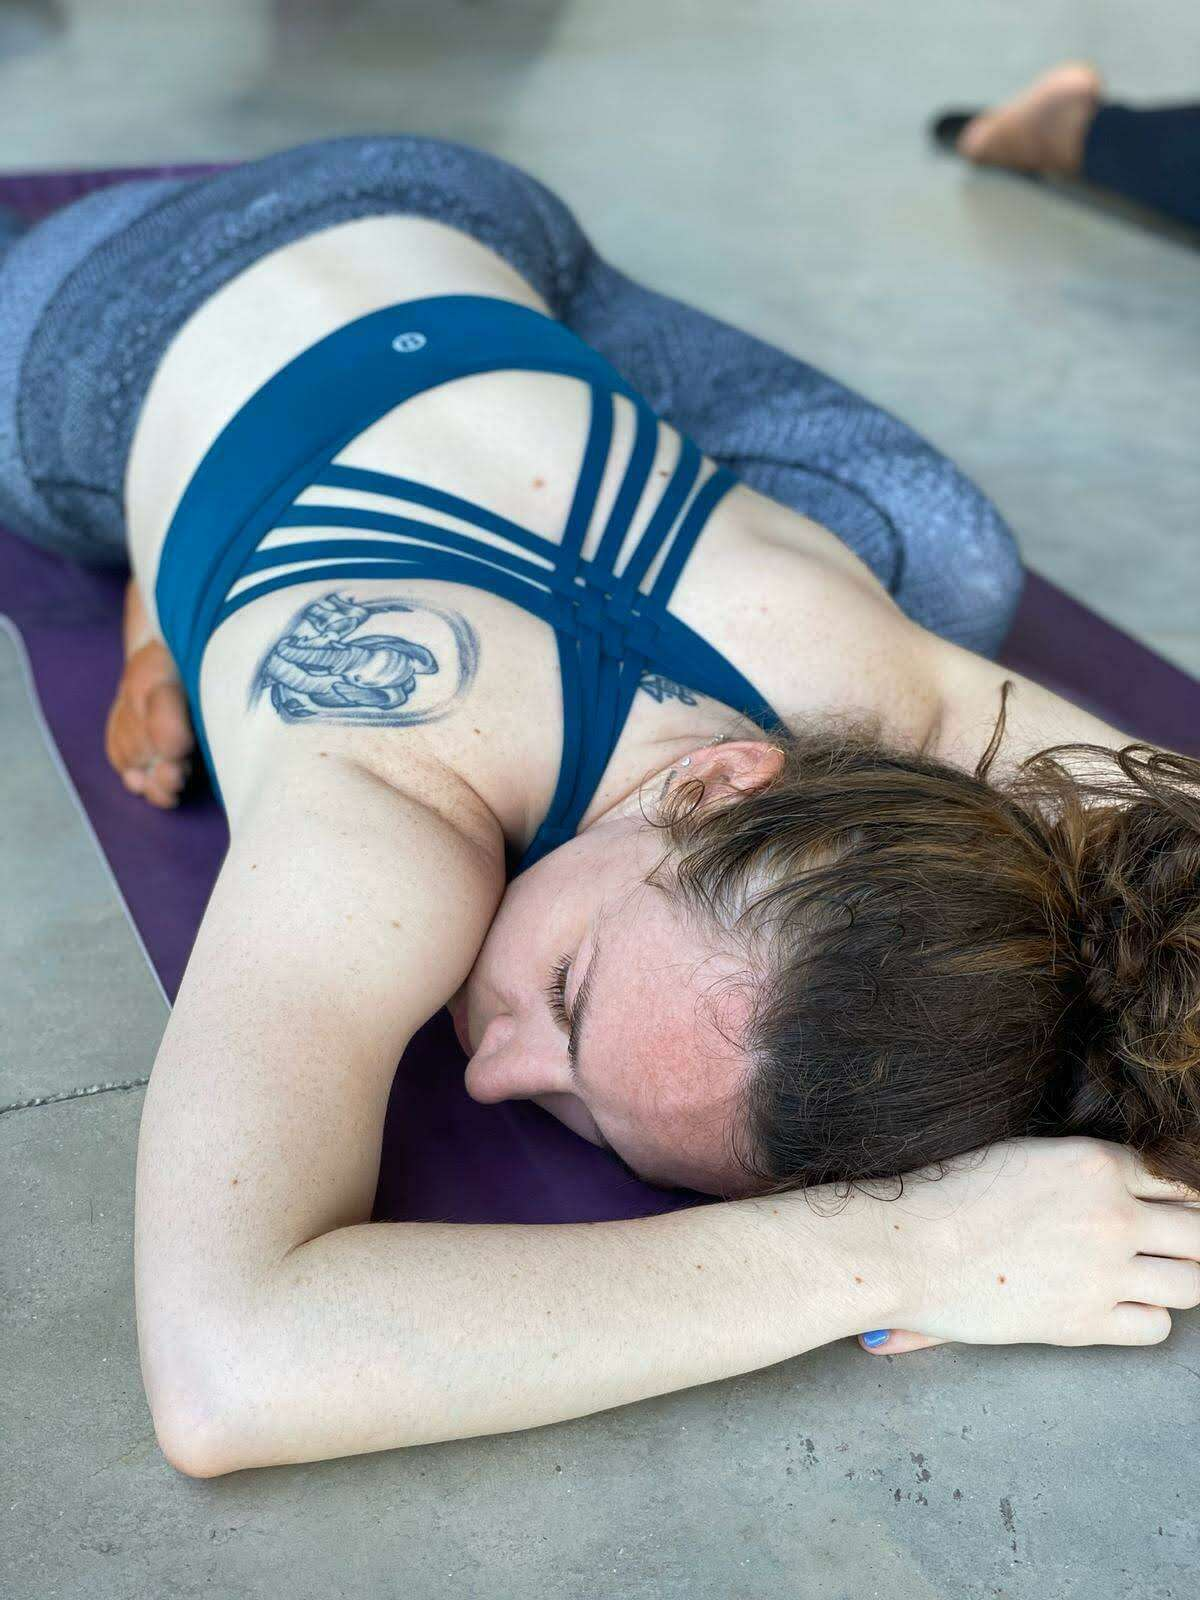 Reporter Alex Stuckey dove into her yoga practice during the pandemic, unlocking benefits she's been seeking for decades.